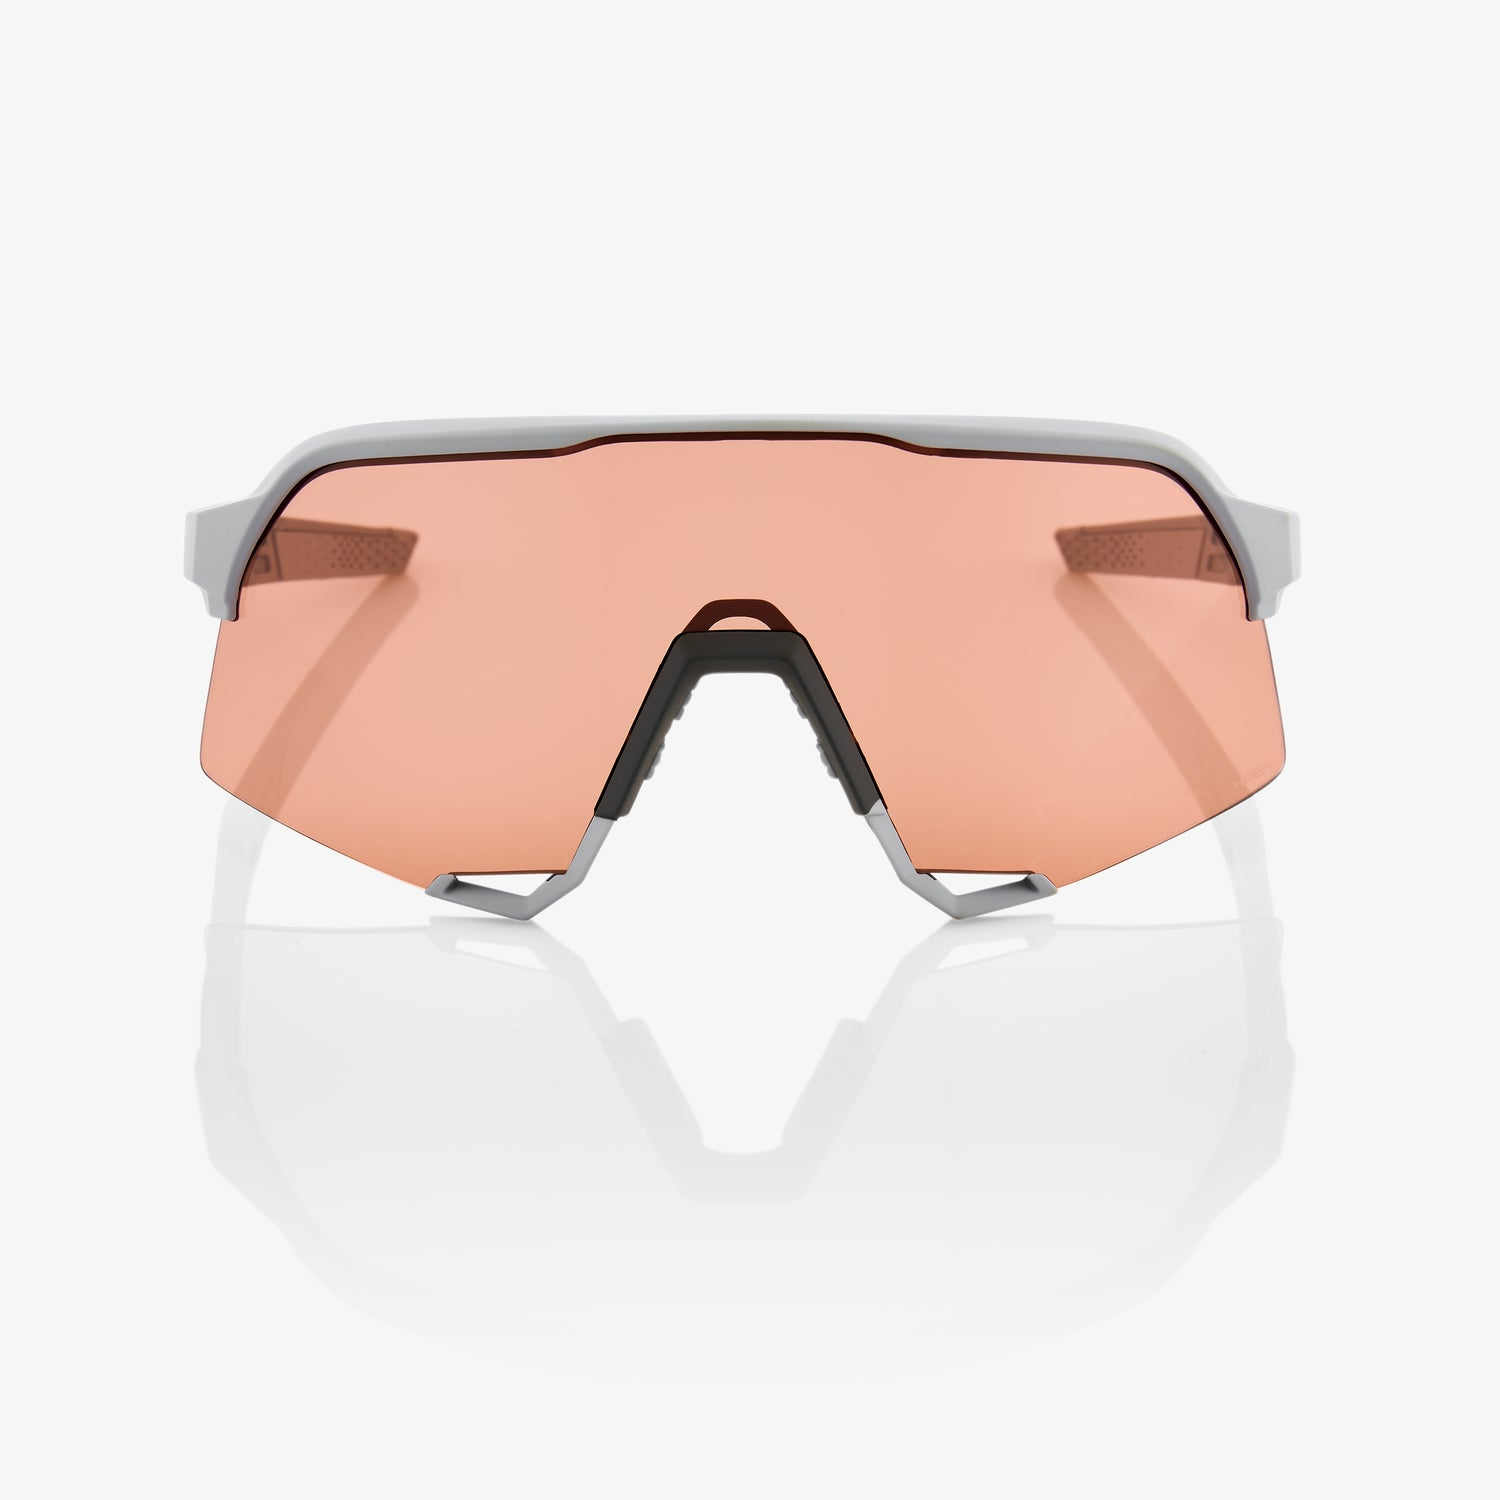 S3 - Soft Tact Stone Grey - HiPER Coral Lens